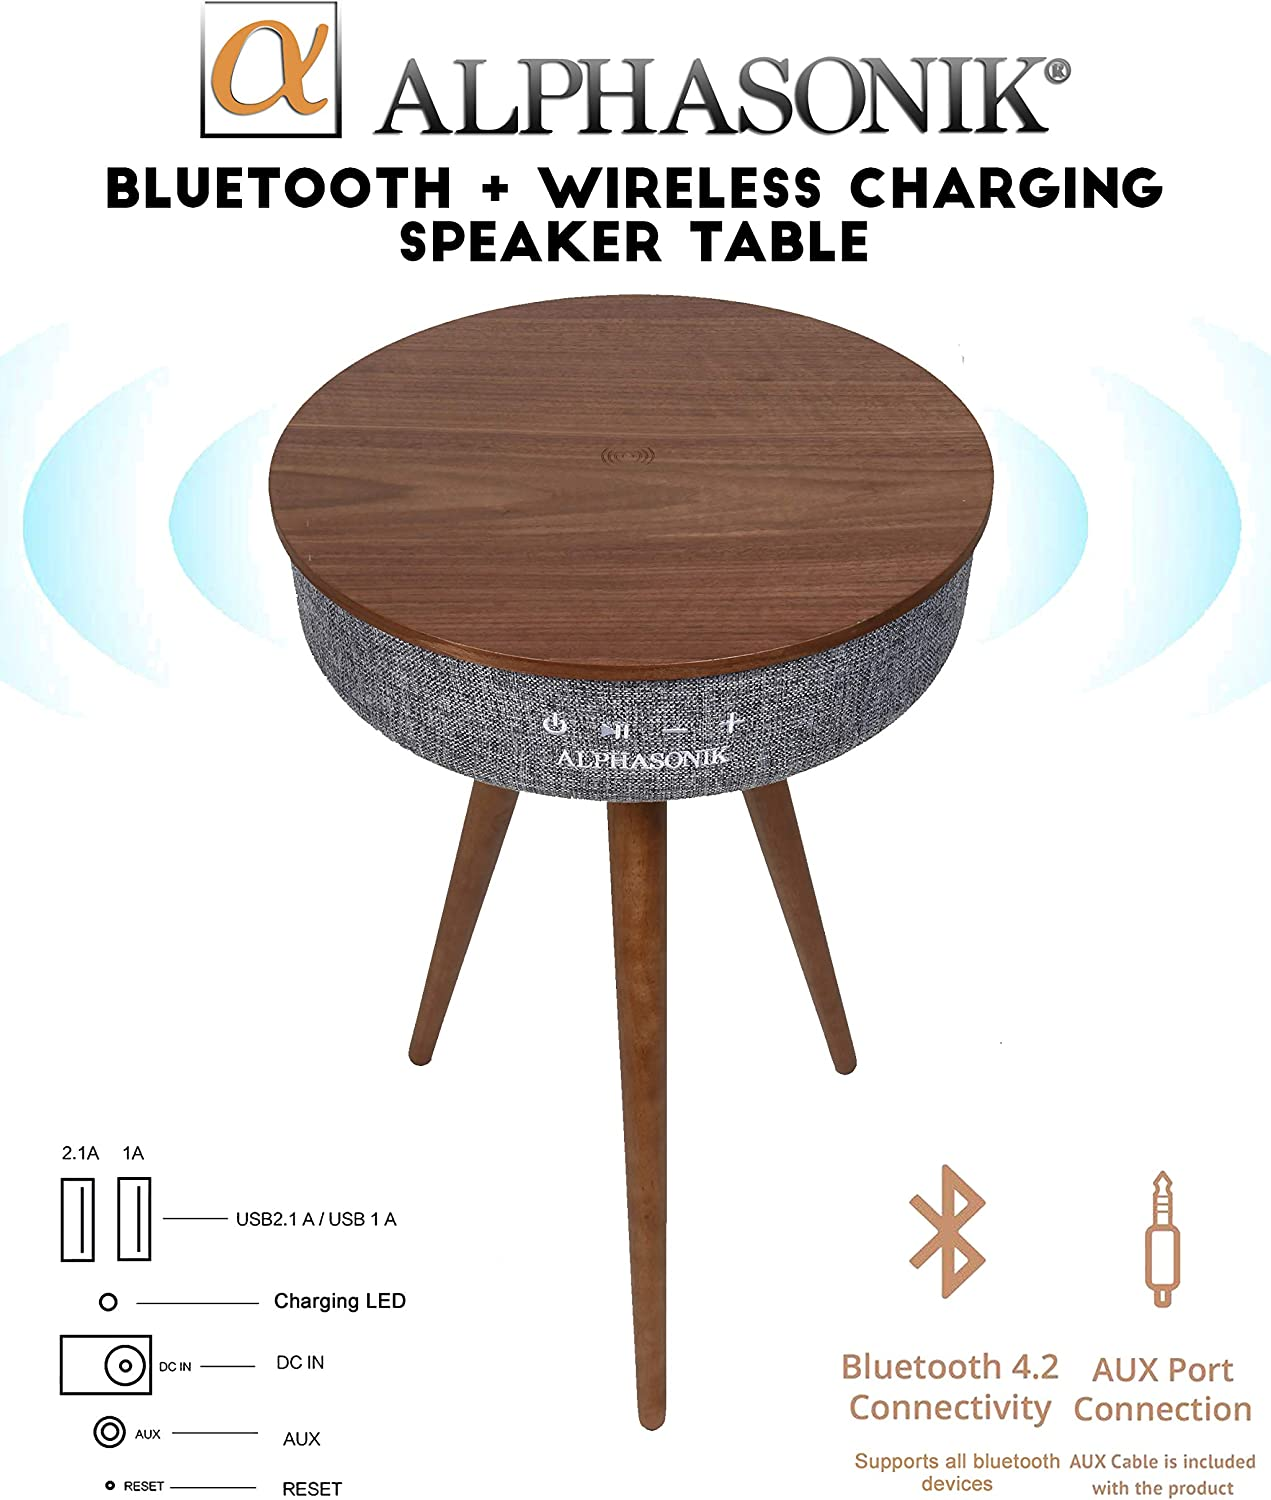 Alphasonik Decor Modern Home Portable Bluetooth Speaker 360 Surround HD Sound with 10 Speakers Drivers Built-in Qi Wireless Charger Dual USB AUX Inputs End Table Coffee Table Night Stand - Walnut 81uACwlwrjL